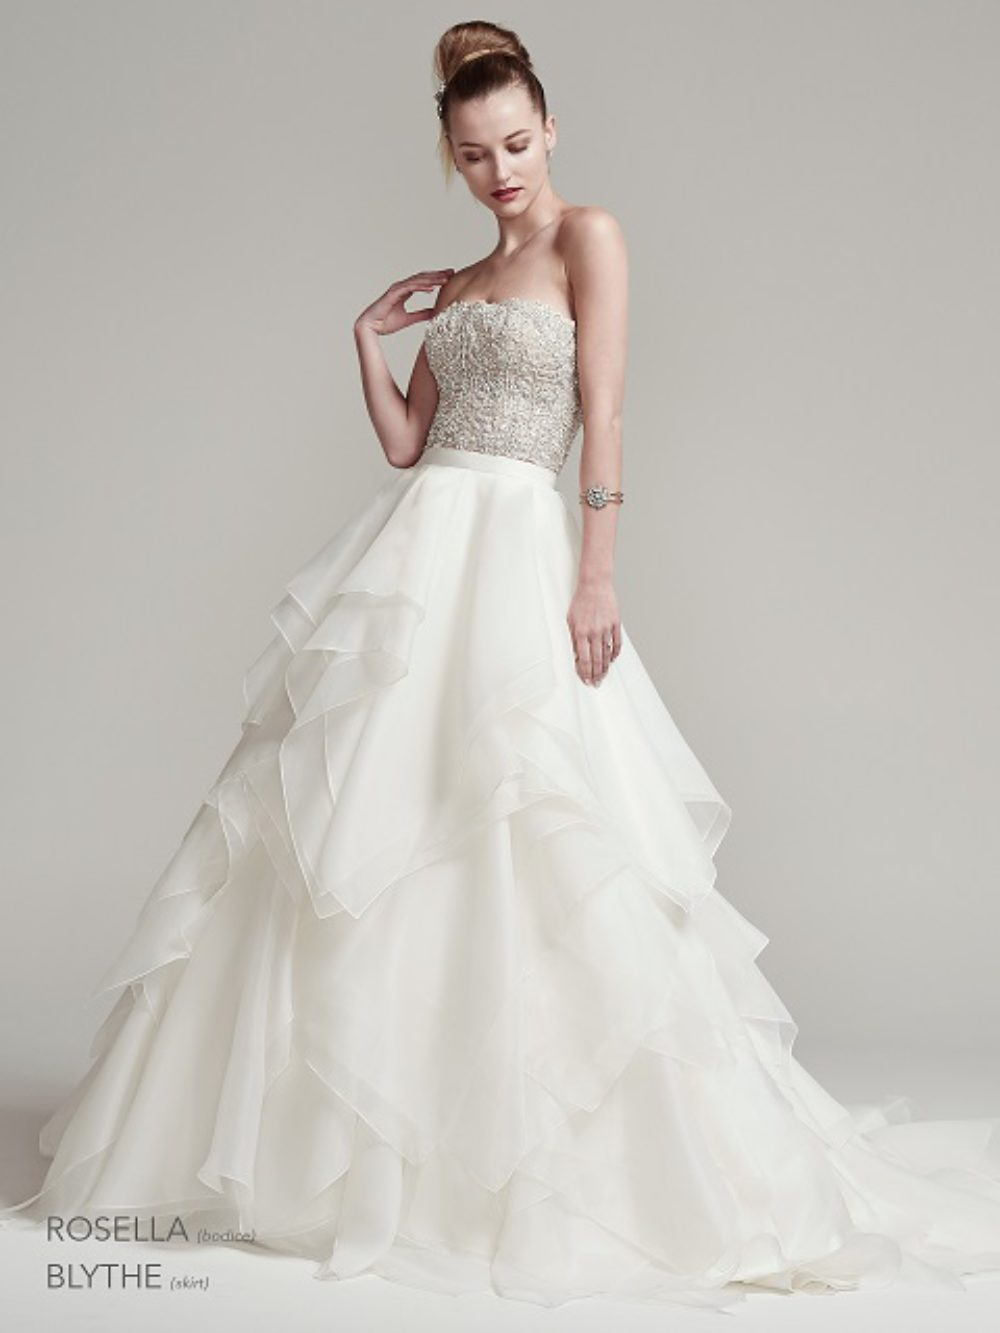 Rosella Blyth Discontinued Wedding Gowns Sale